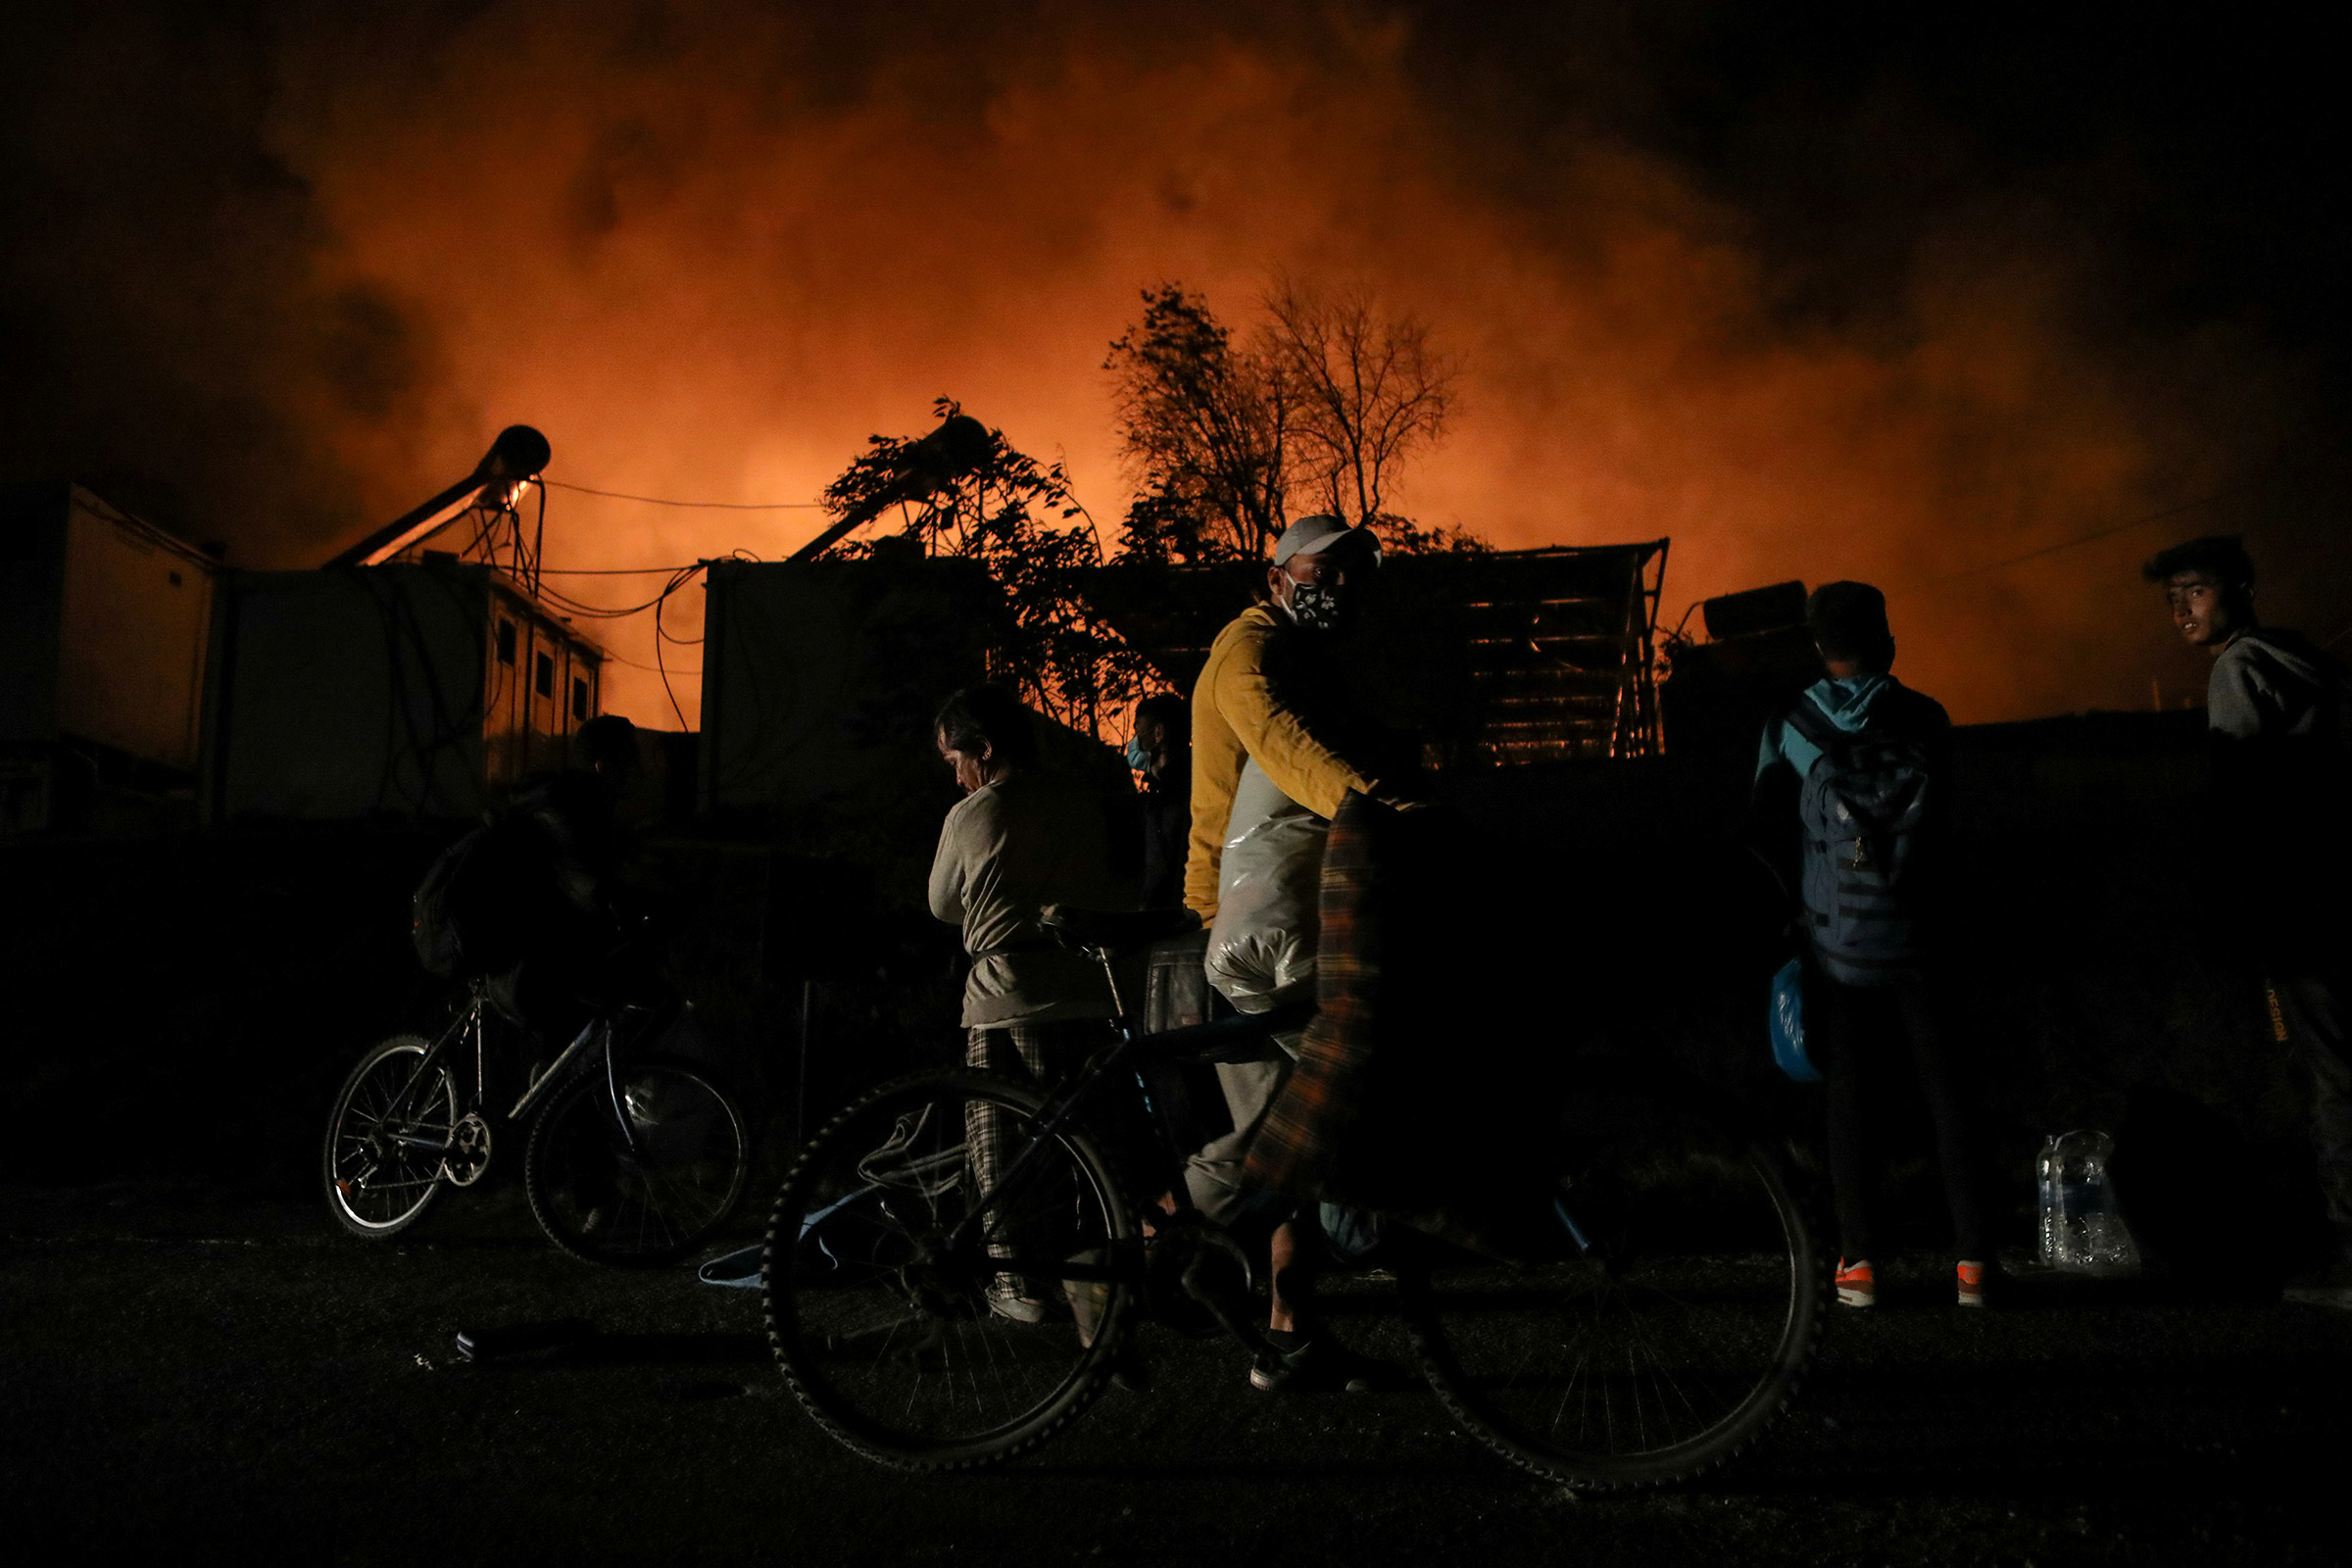 Refugees and migrants carry their belongings as they flee from a fire burning at the Moria camp on the island of Lesbos, Greece, on Sept. 9, 2020.